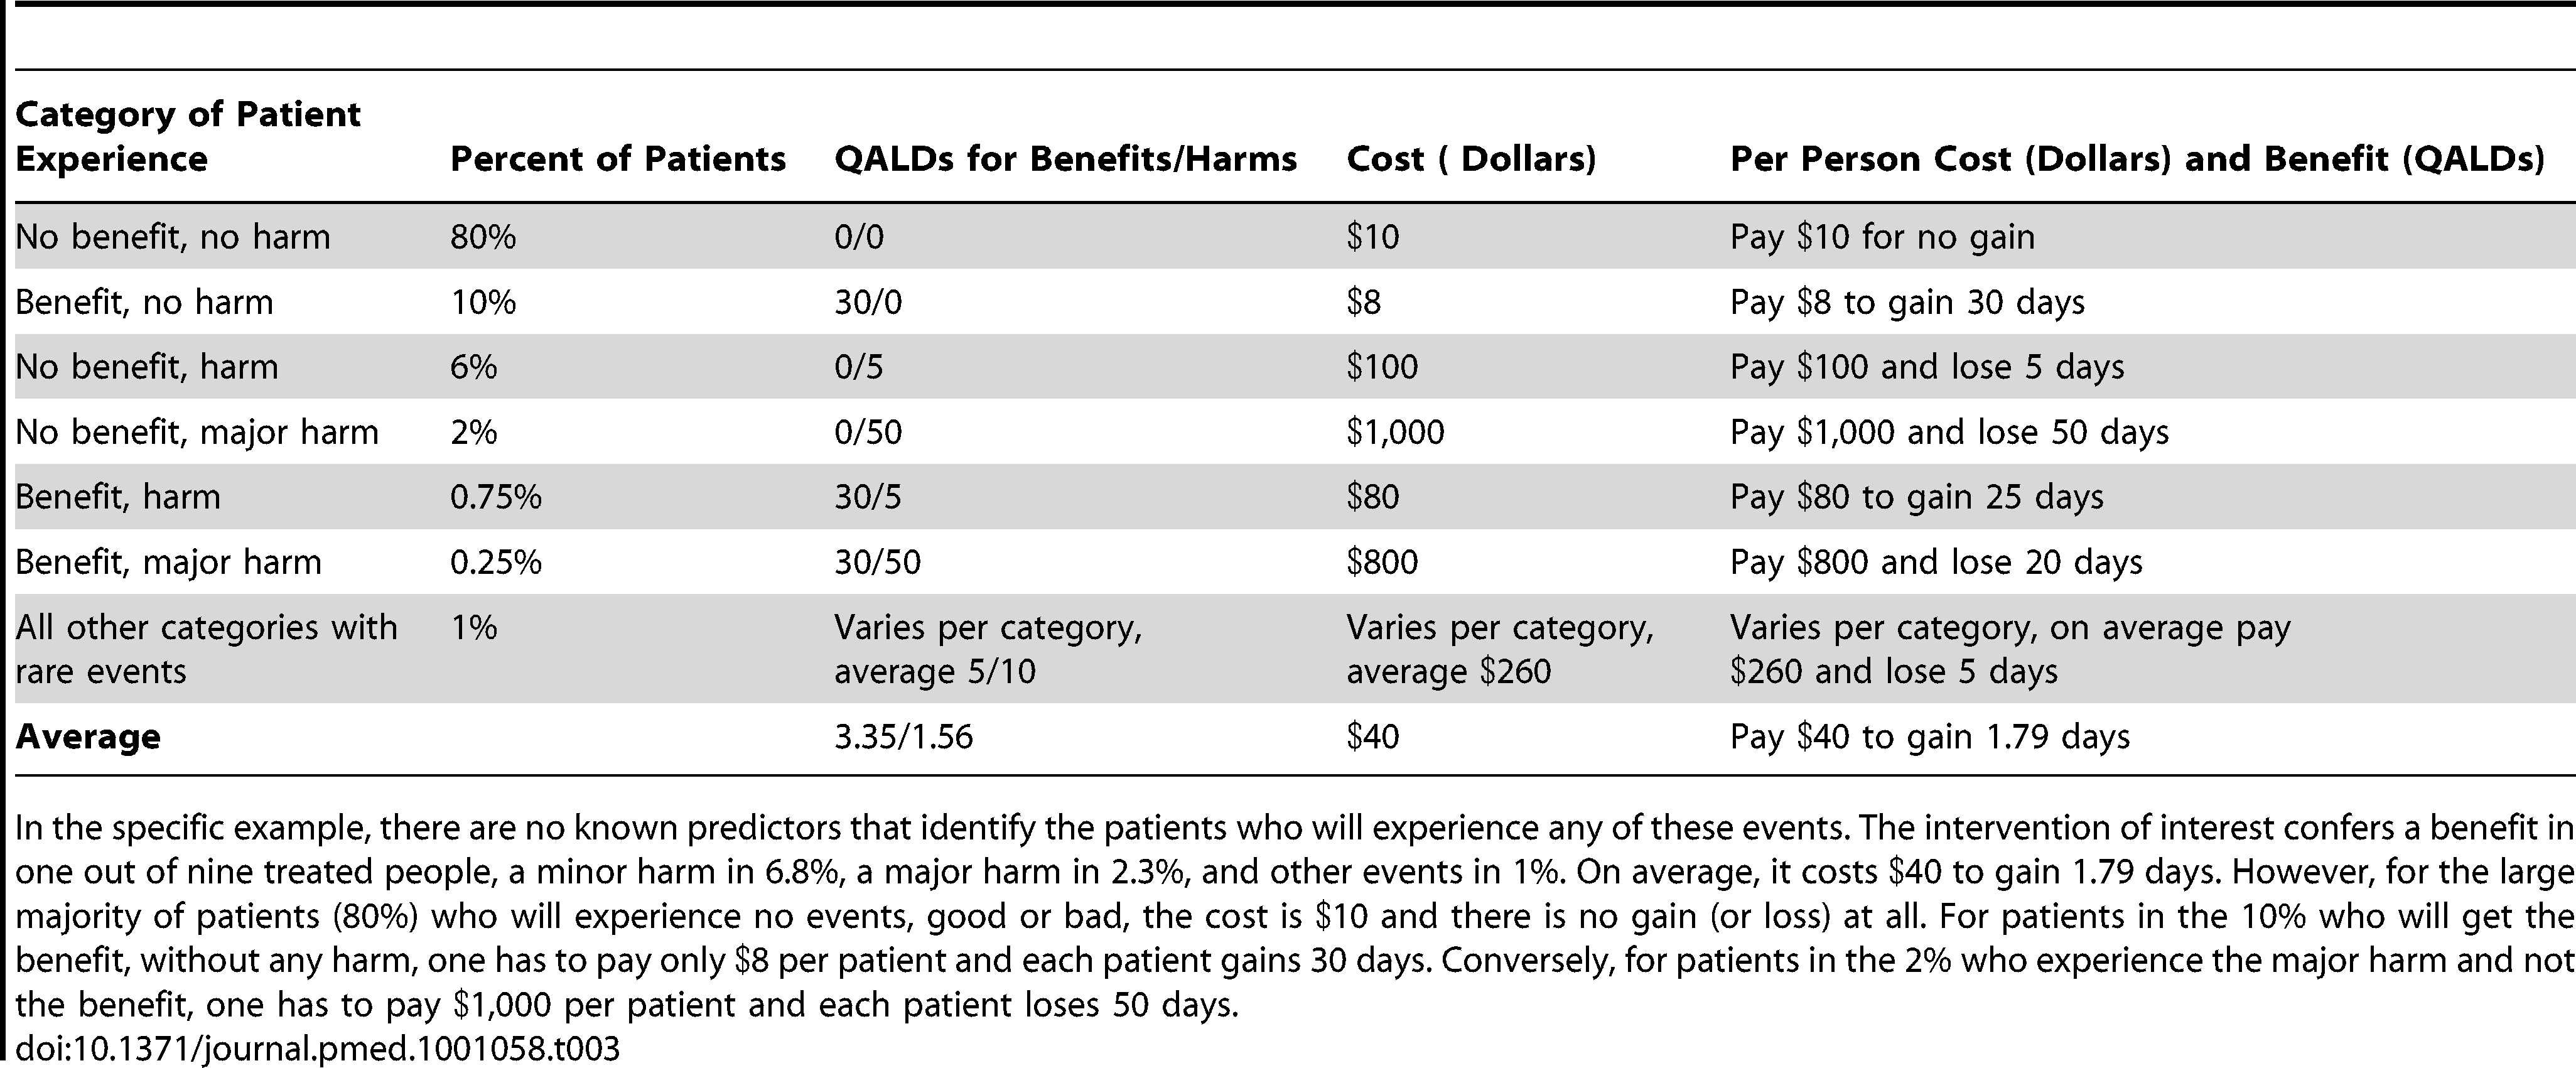 Hypothetical example of different individual experiences for patients who do and do not experience different events (benefit, harm, major harm, or other rare events).